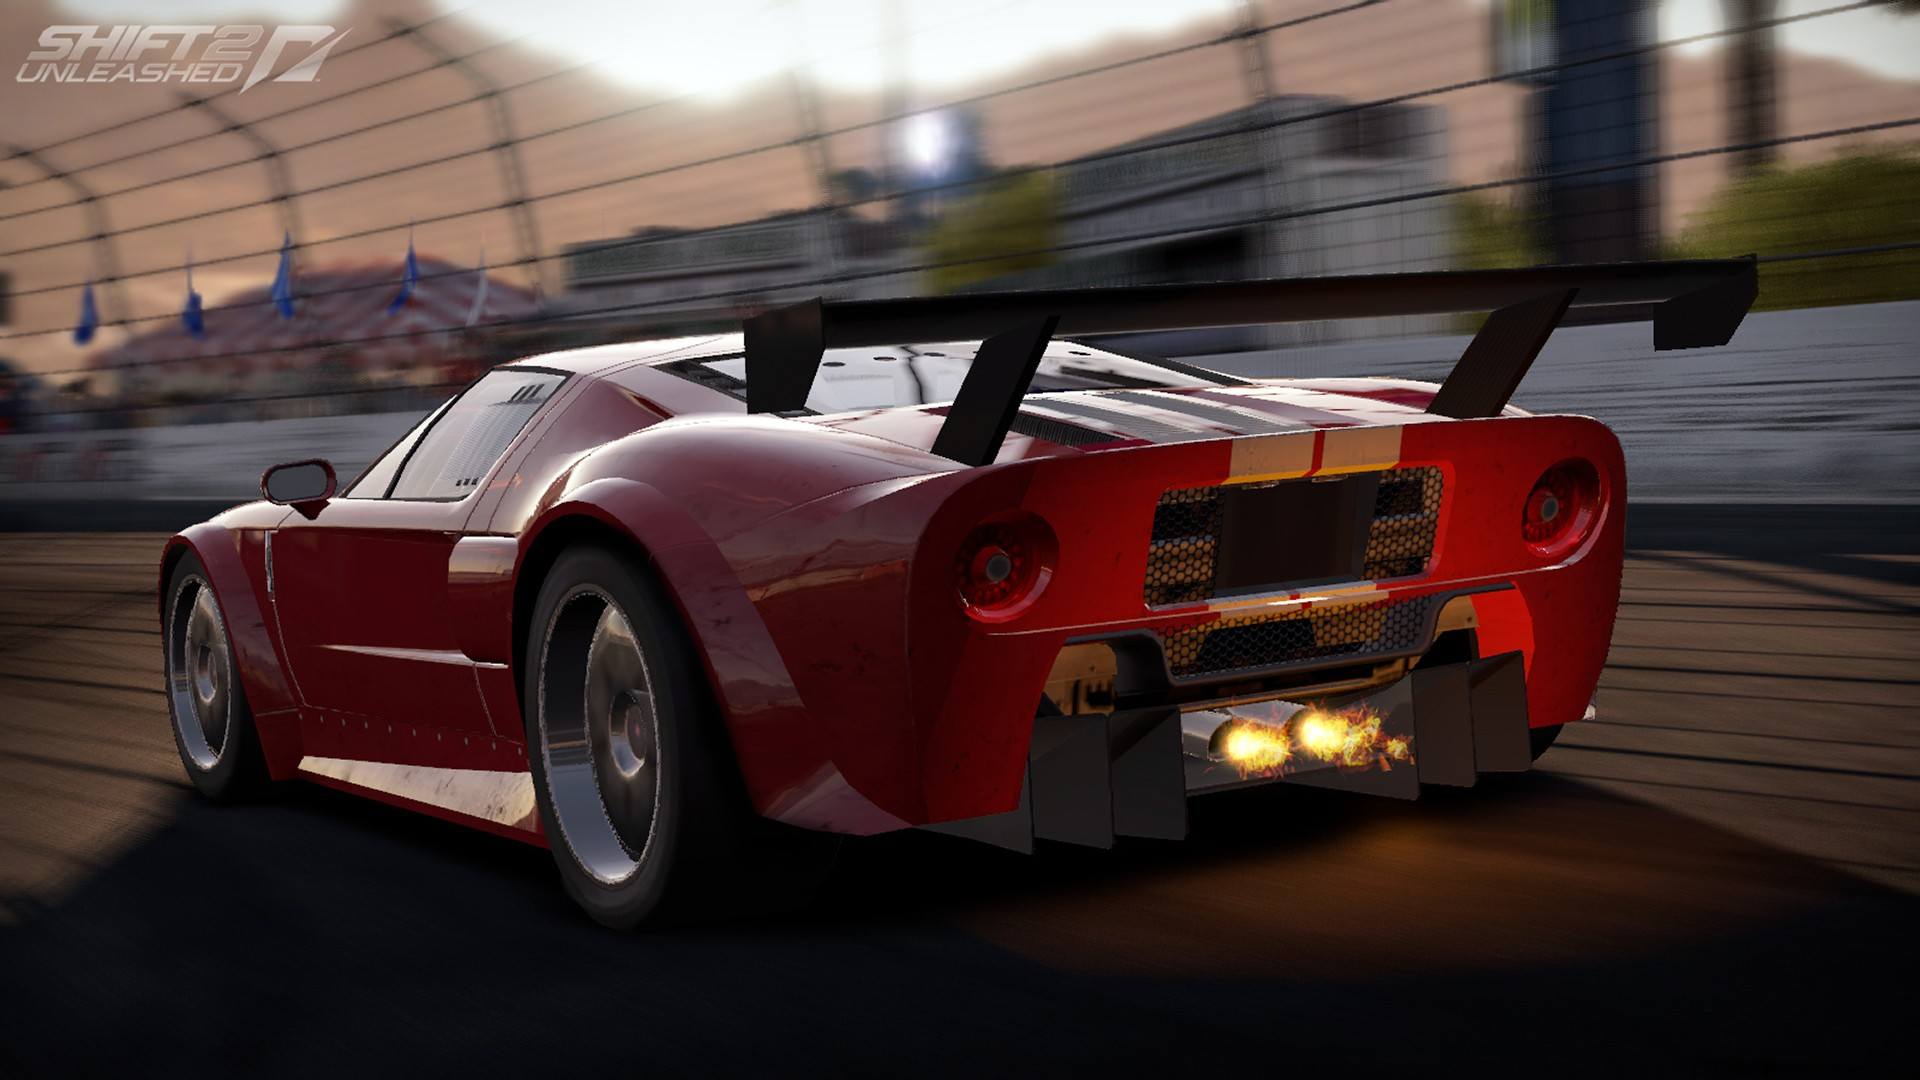 Ford GT Wallpaper 1920x1080 Ford GT Need For Speed Shift 2 1920x1080